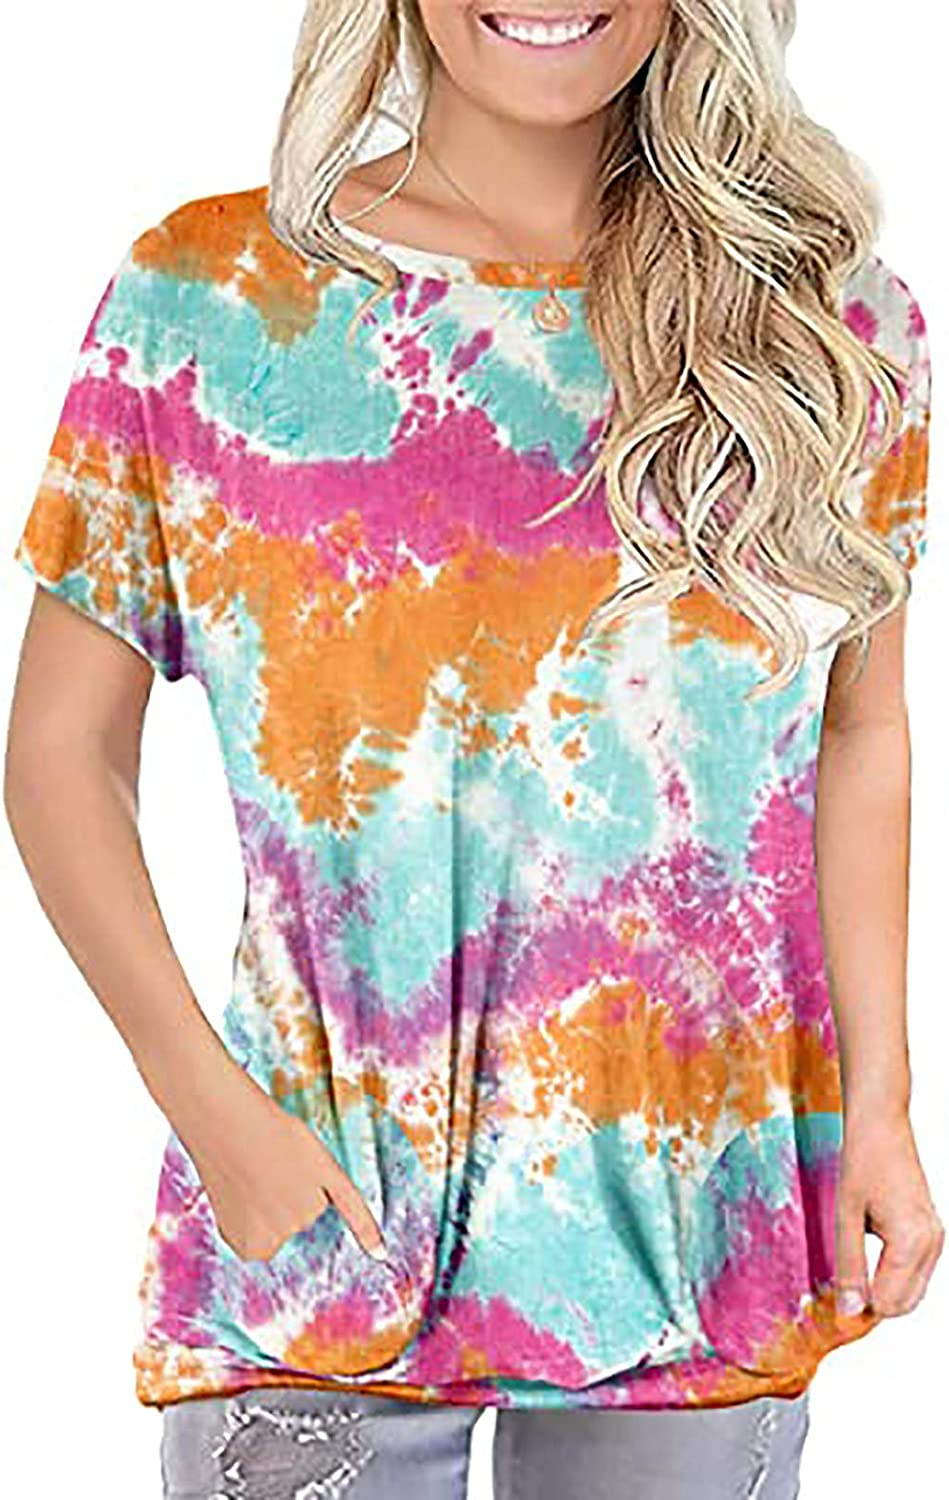 Tops for Women Lattice Summer Casual T-Shirts Tie Dye Short Sleeve Blouses Tunic Loose Basic Tunic with Pockets